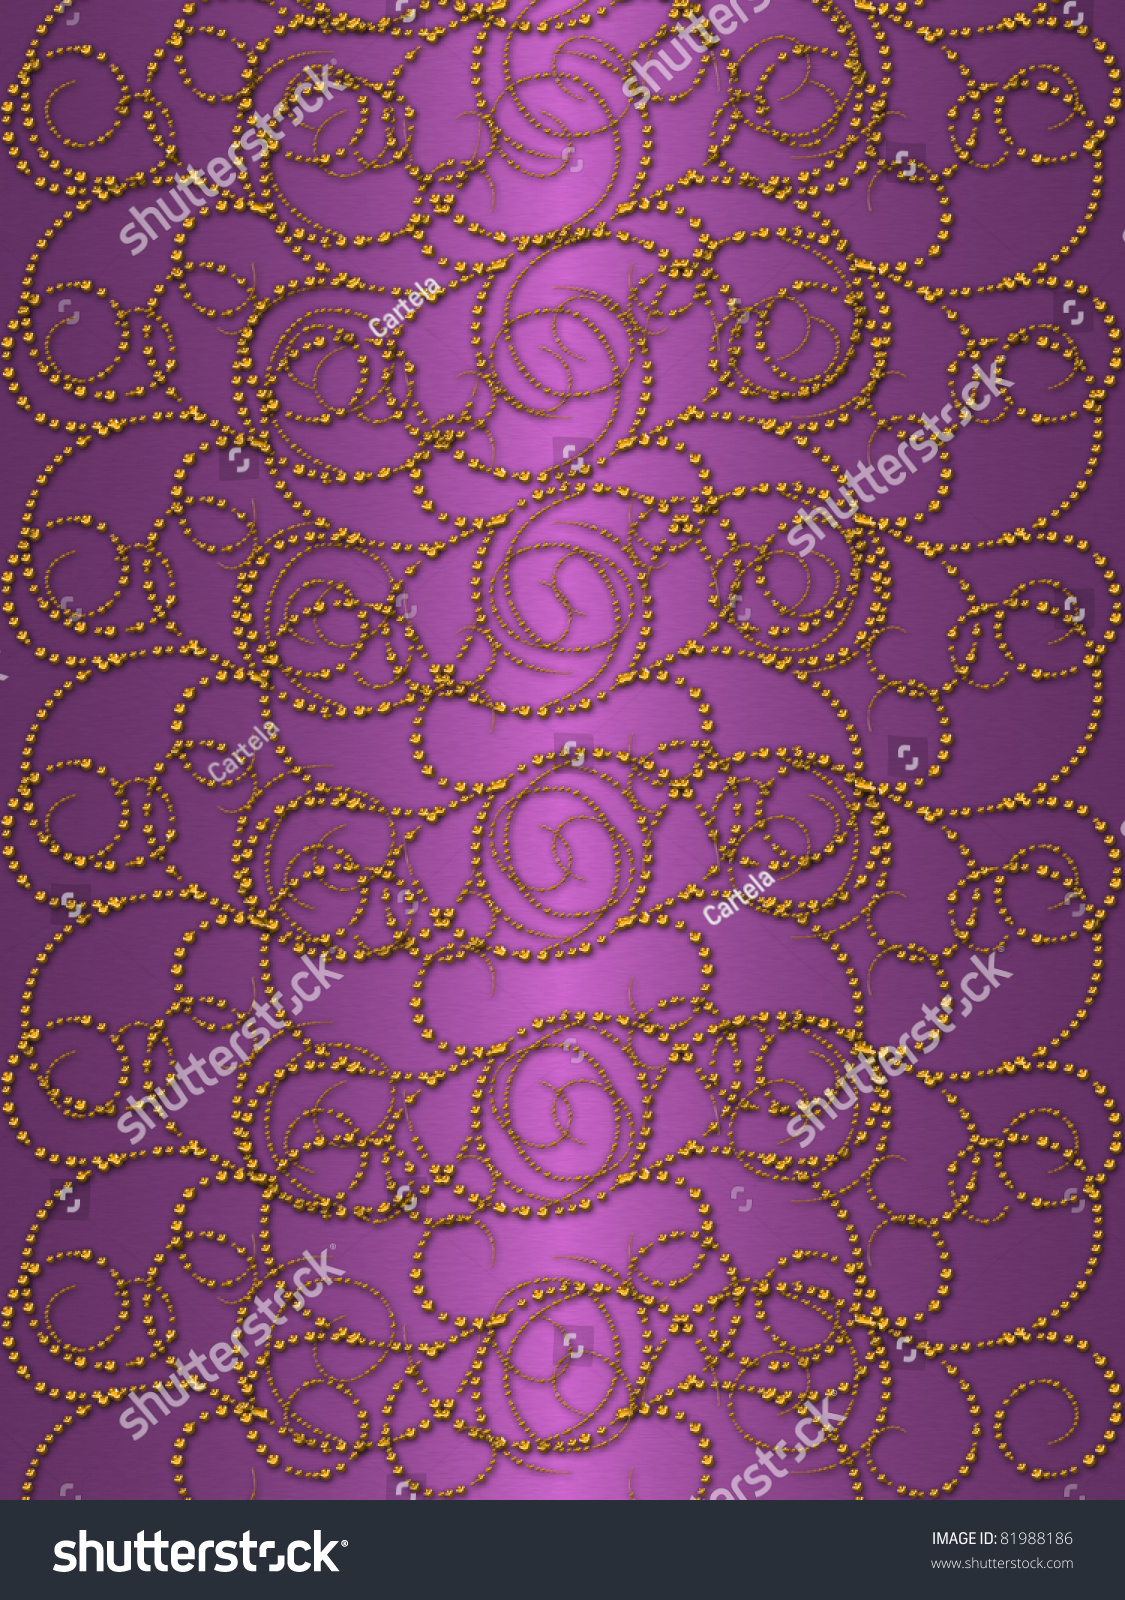 Gold Pattern On The Purple Vintage Background Stock Photo 81988186 : Shutterstock